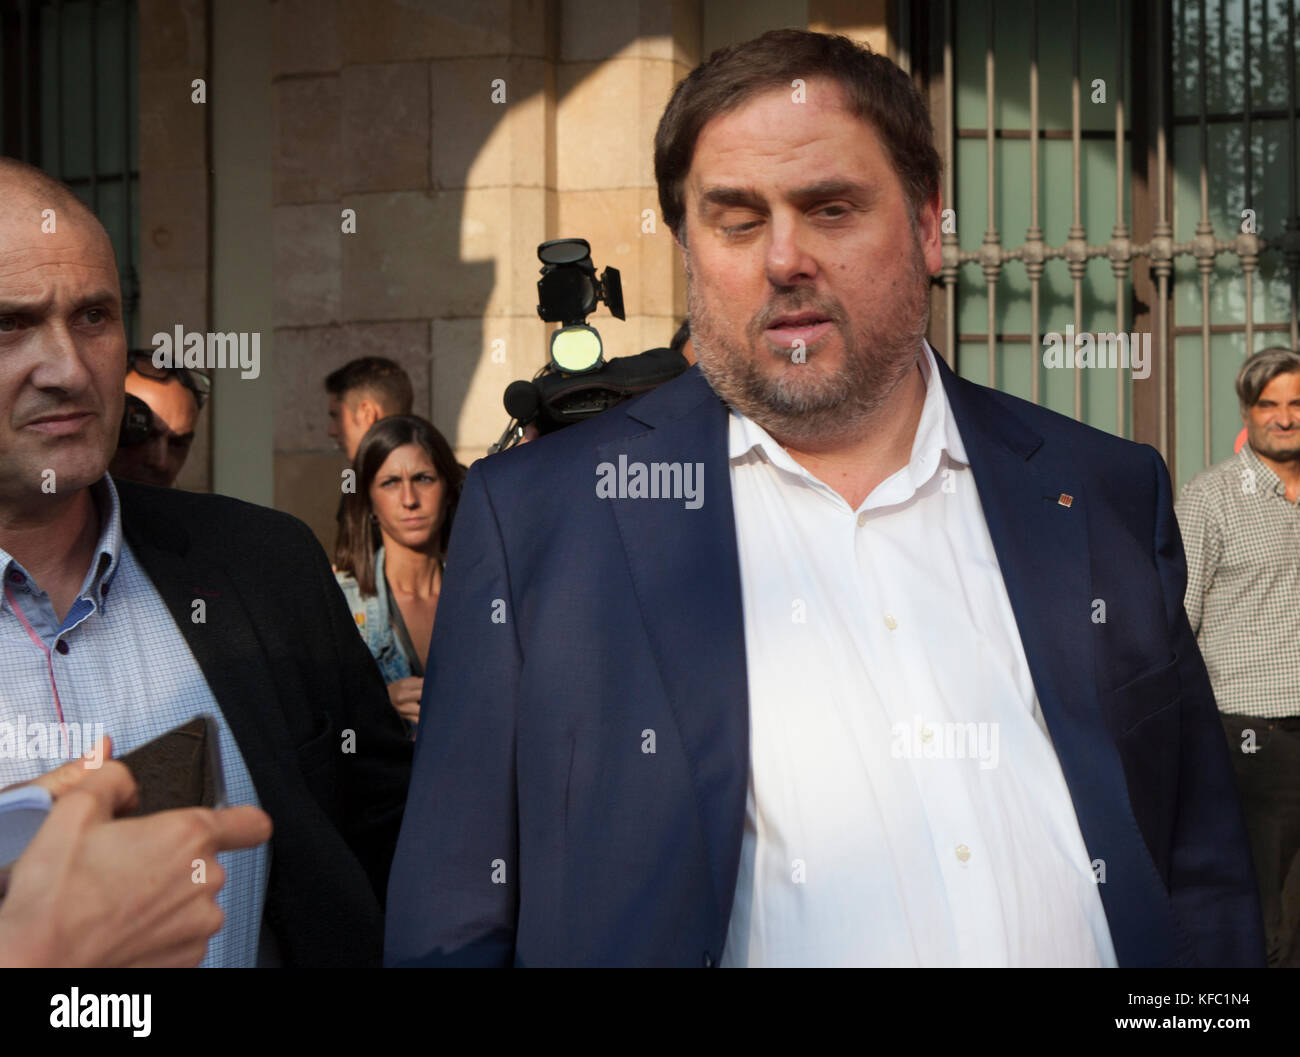 Barcelona, Spain. 27th October, 2017.   Oriol Junqueras, leaving catalan parliament after declaration of independence. - Stock Image